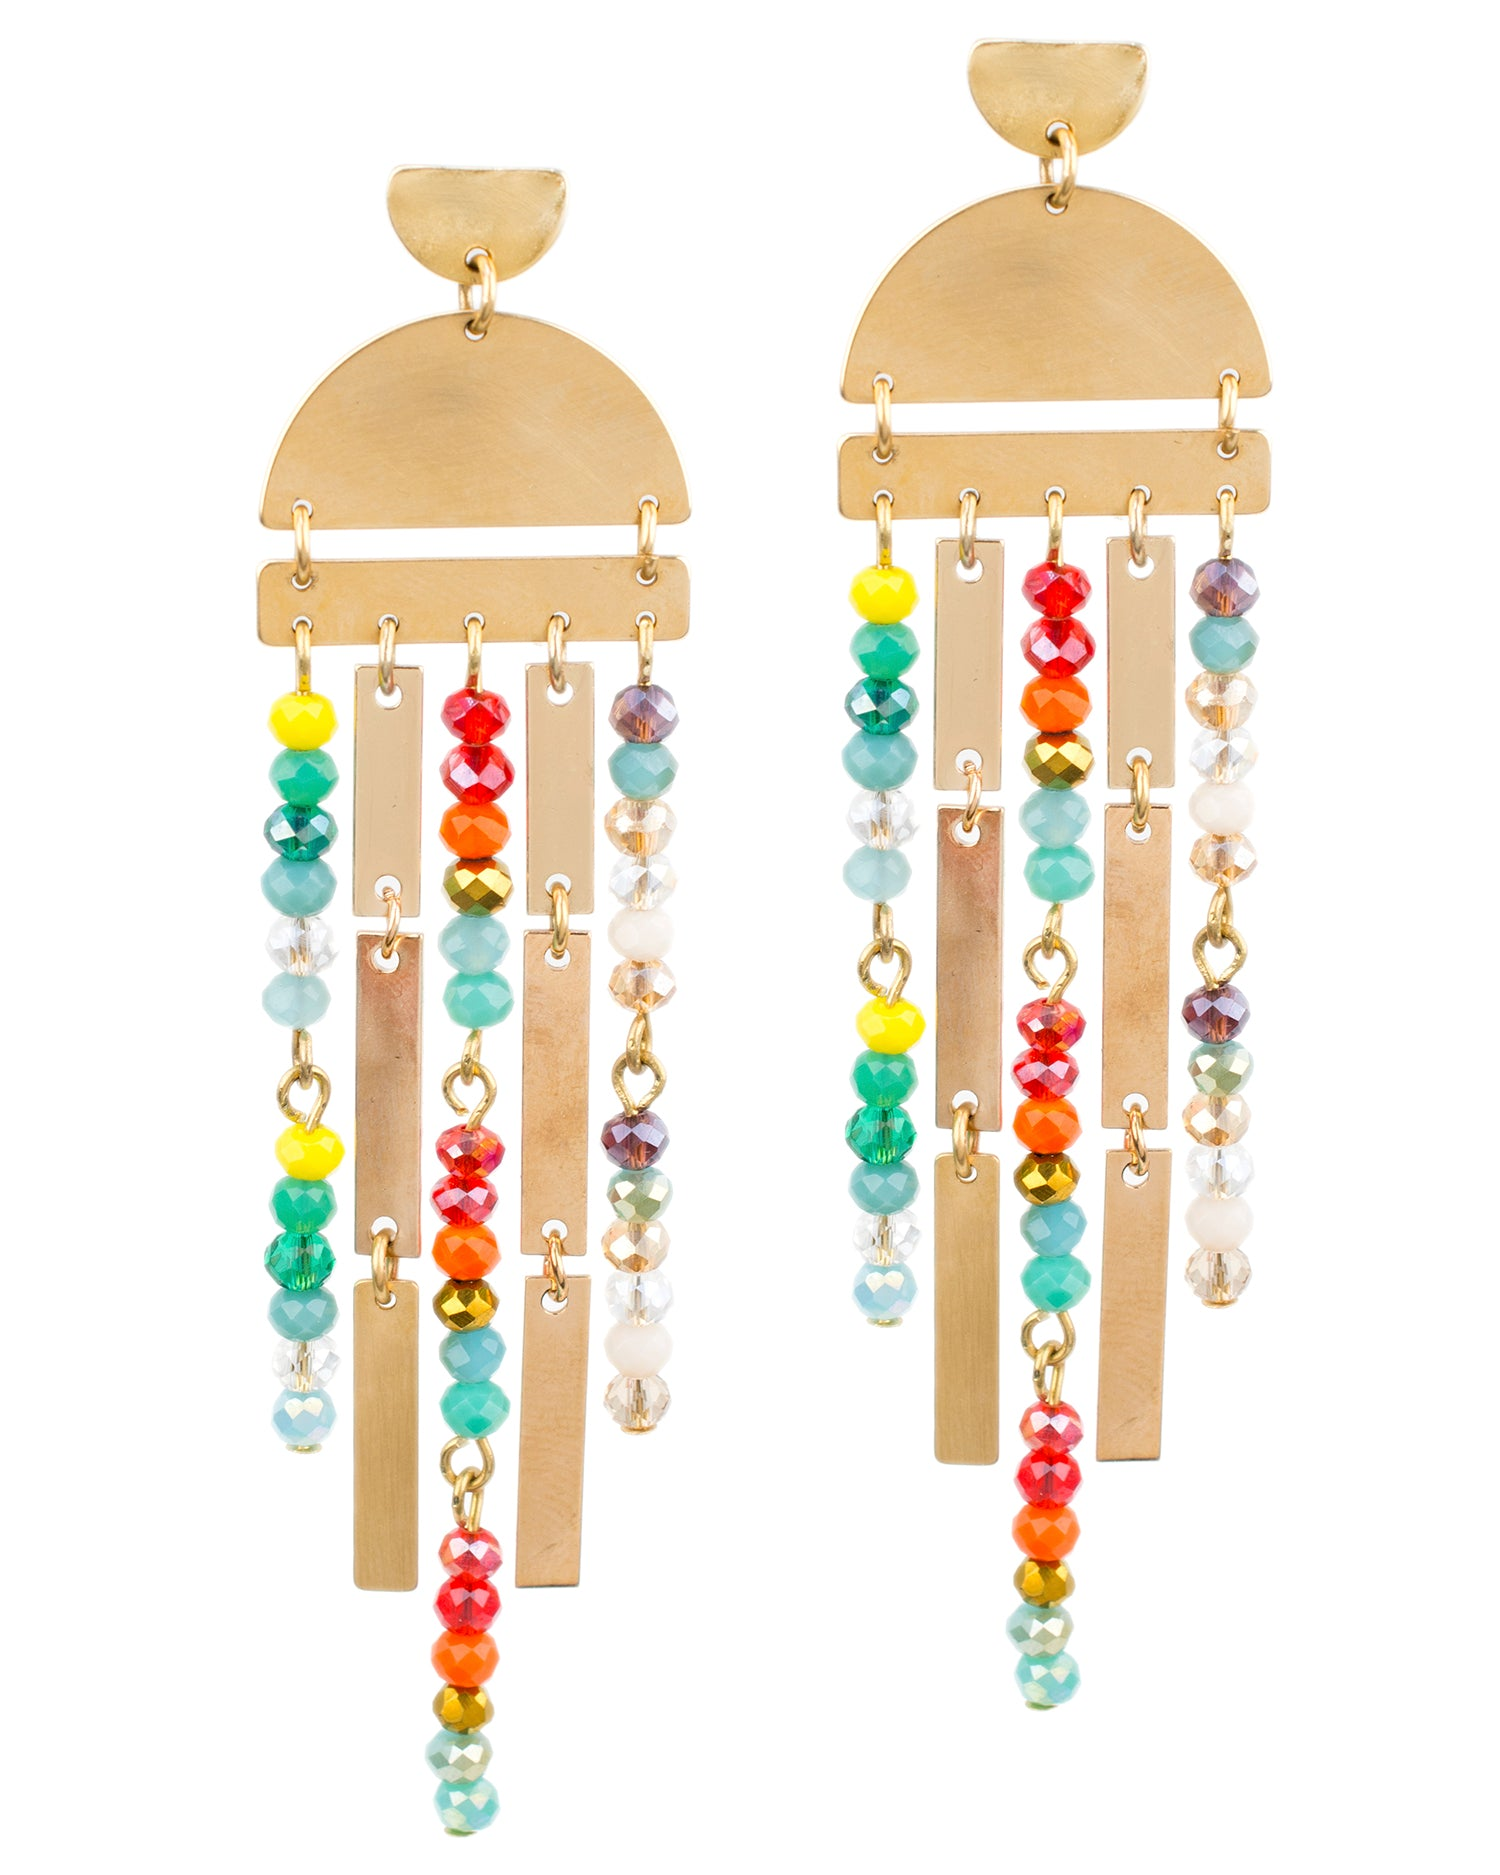 Rainbow Geometric Fringe Earrings